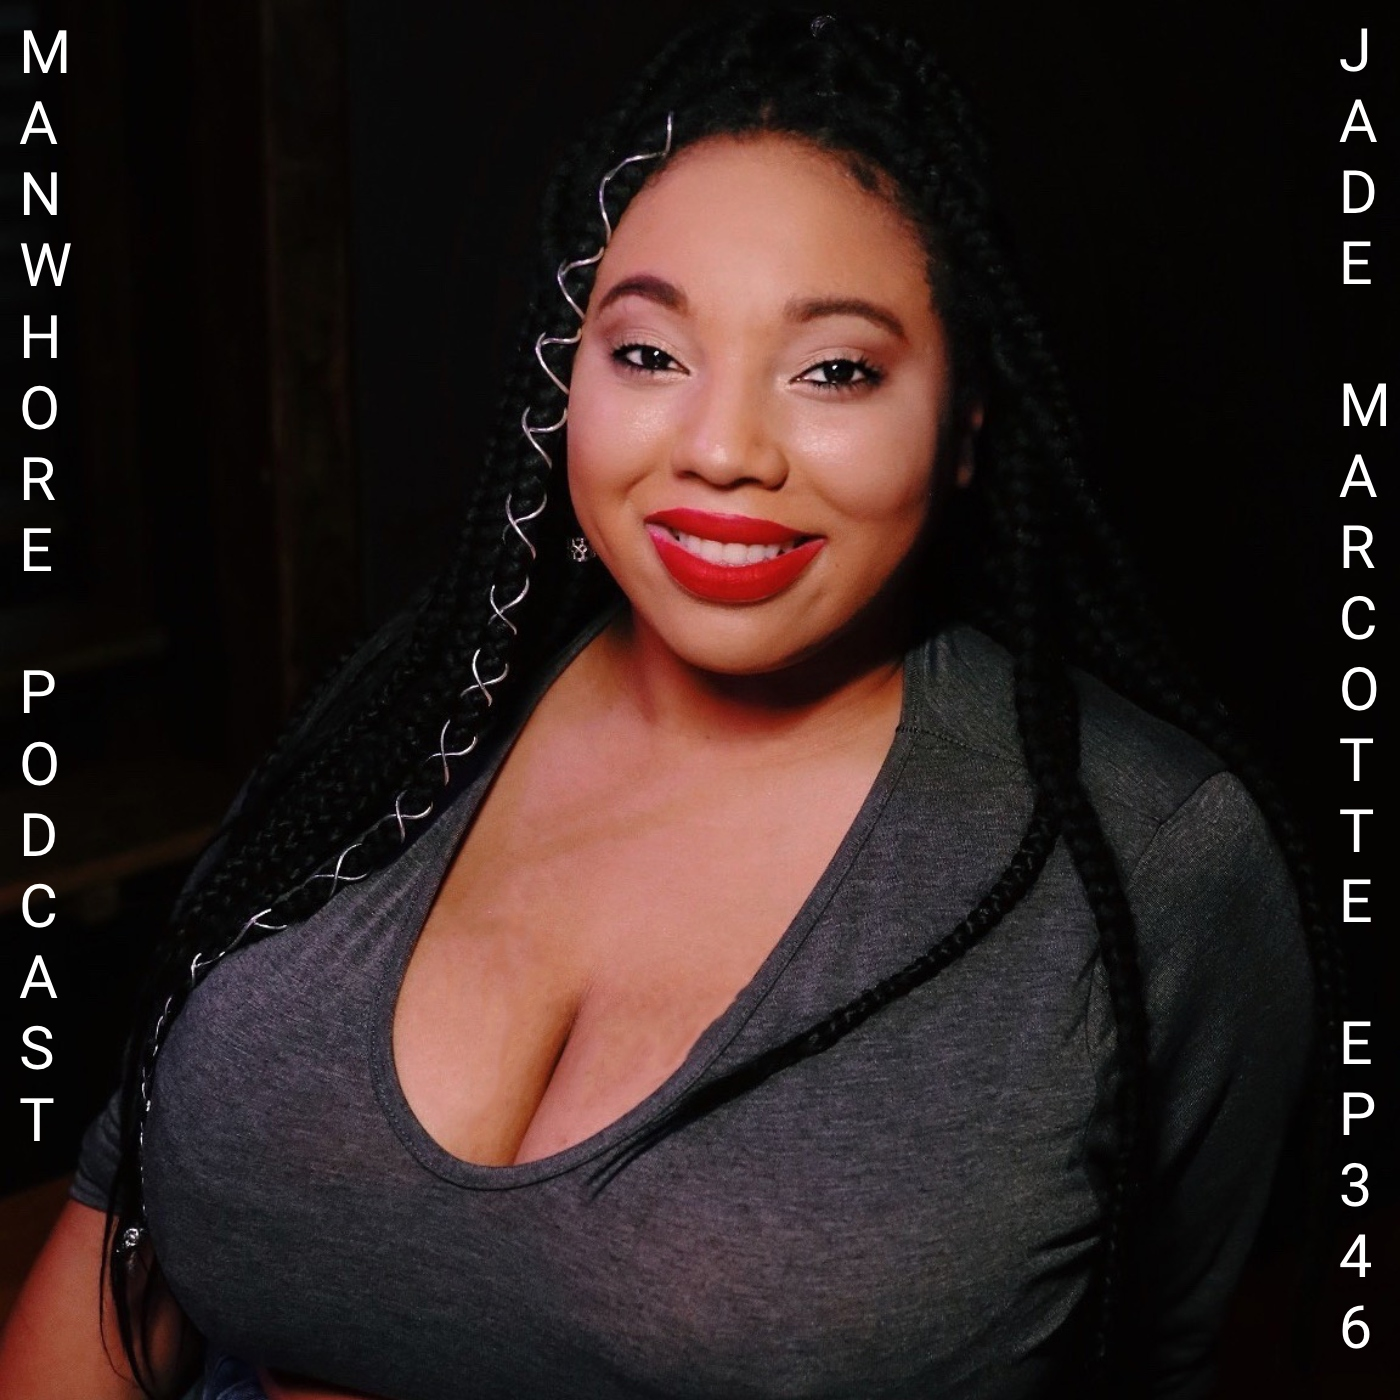 The Manwhore Podcast: A Sex-Positive Quest - Ep. 346: Hunting Older, Rich White Men with Jade Marcotte